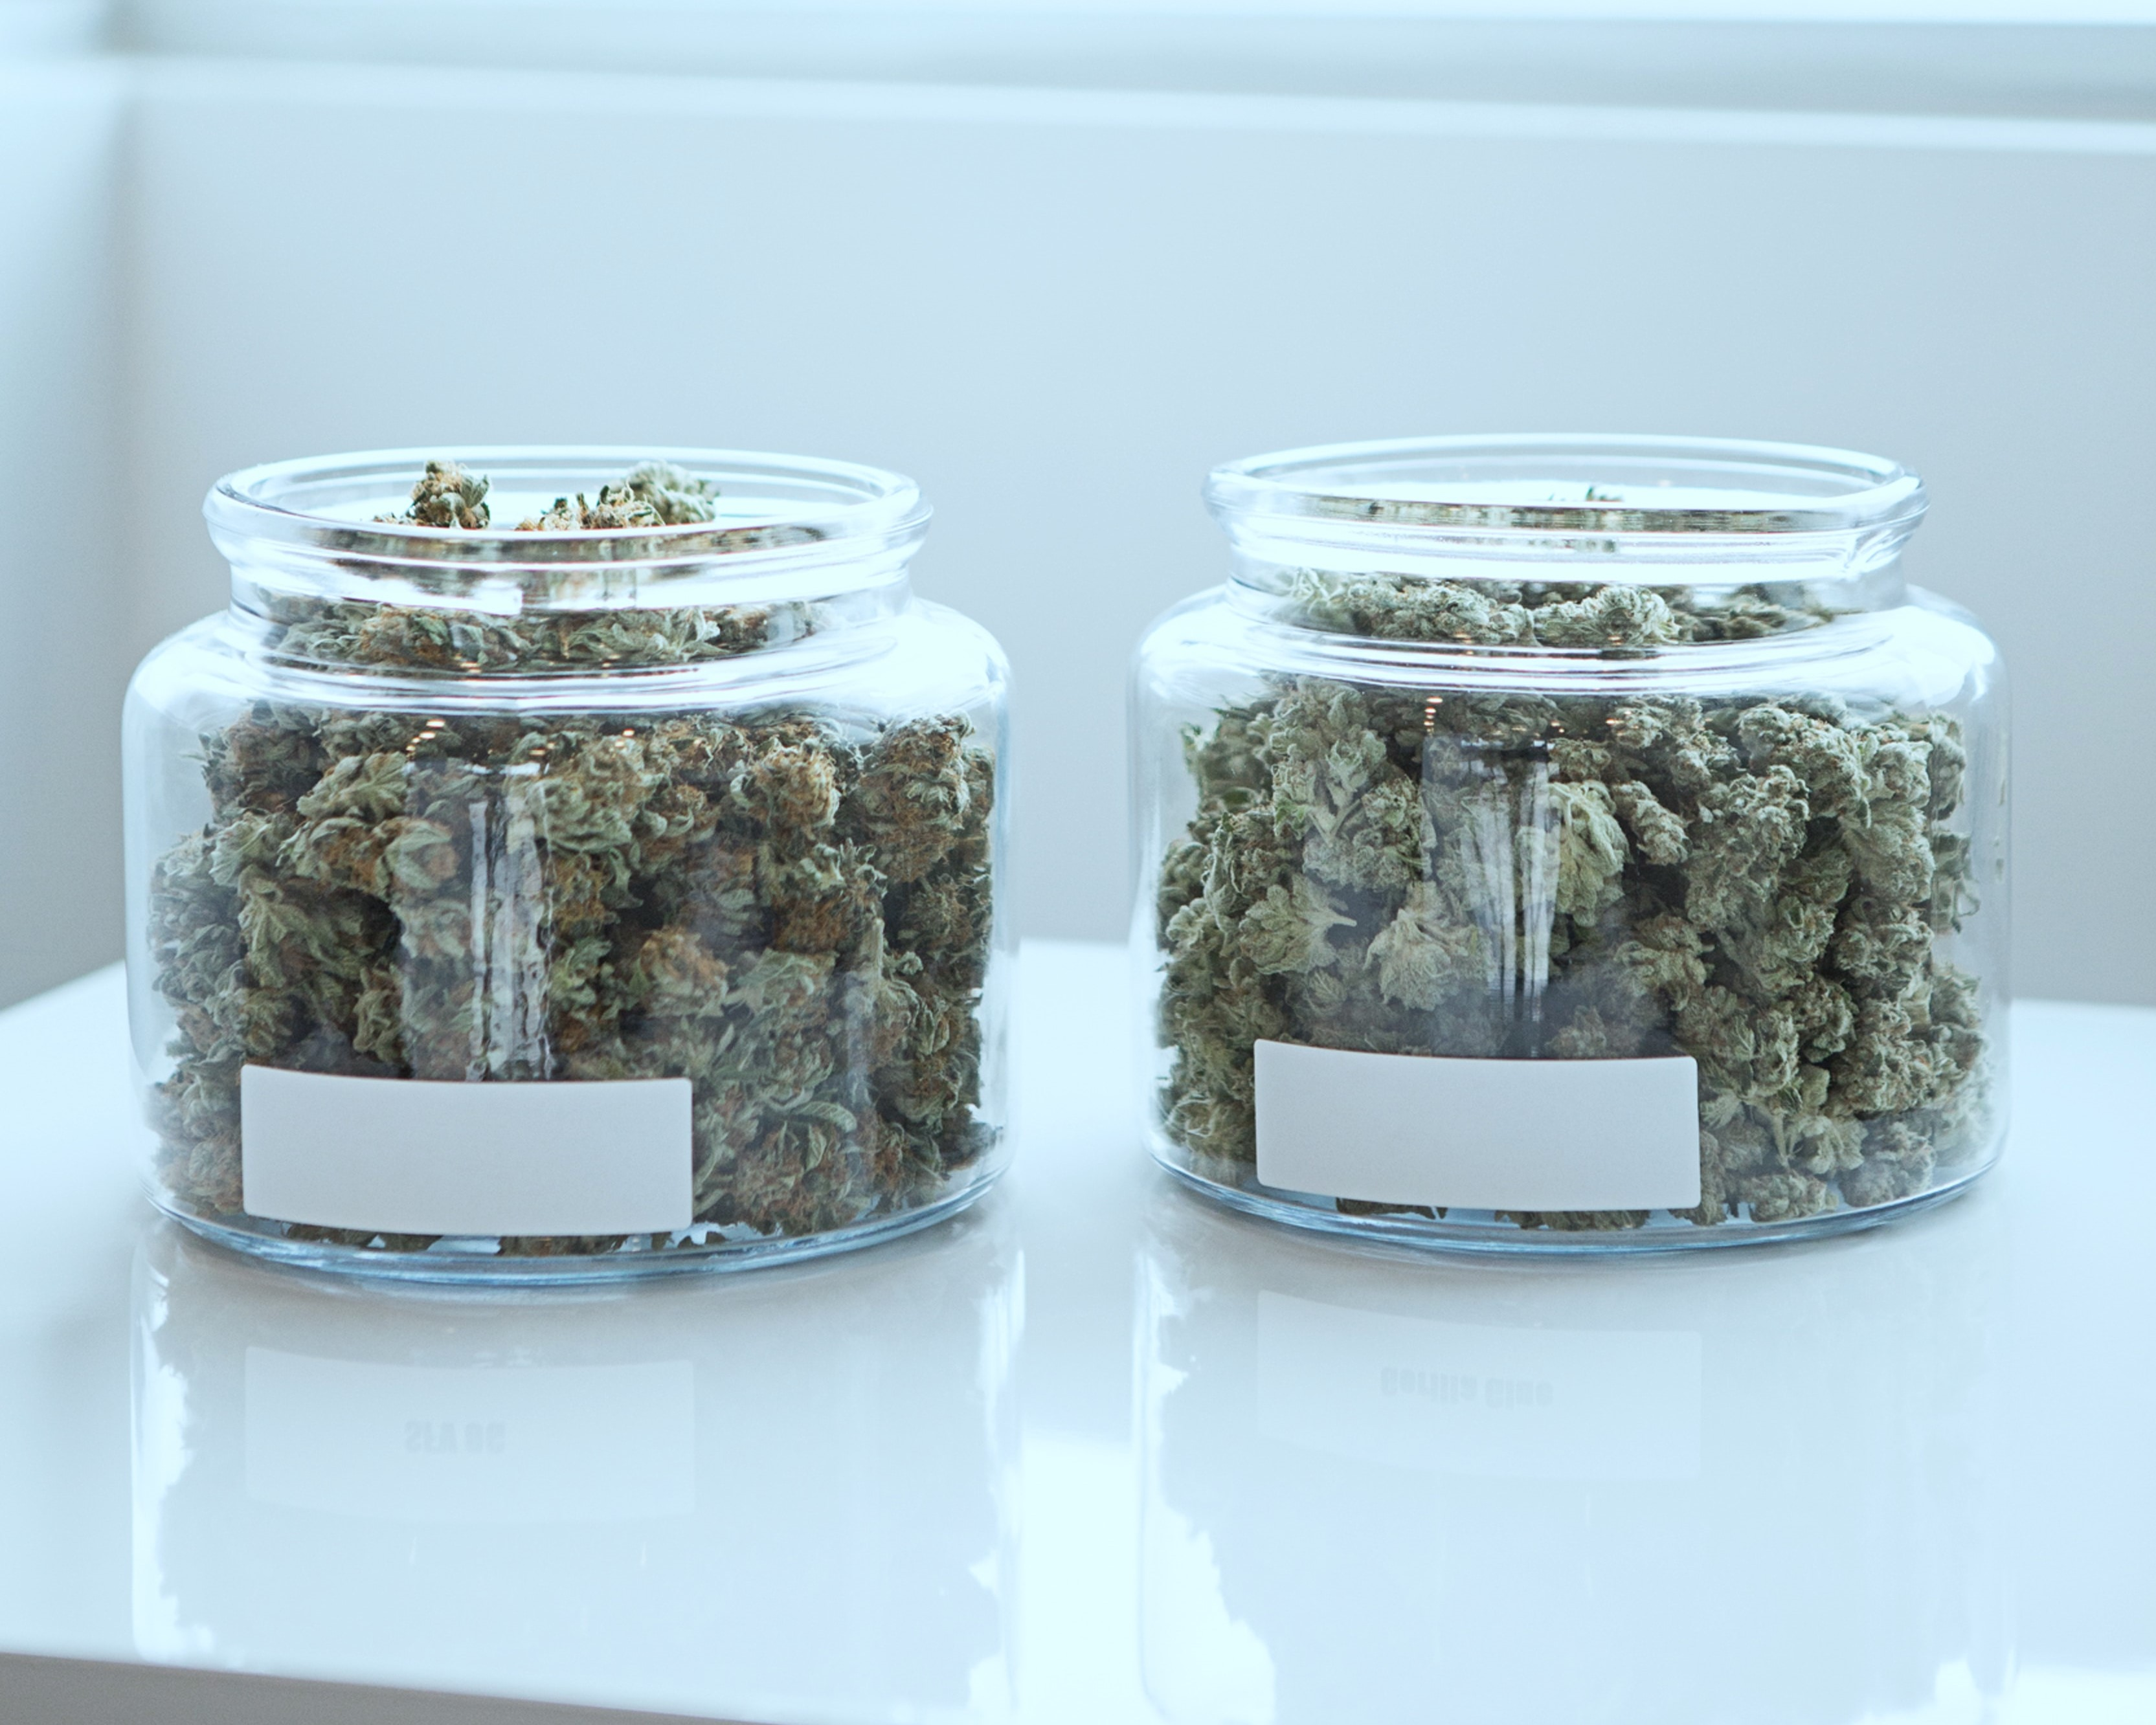 Photo of two jars of weed for sale in a cannabis store.